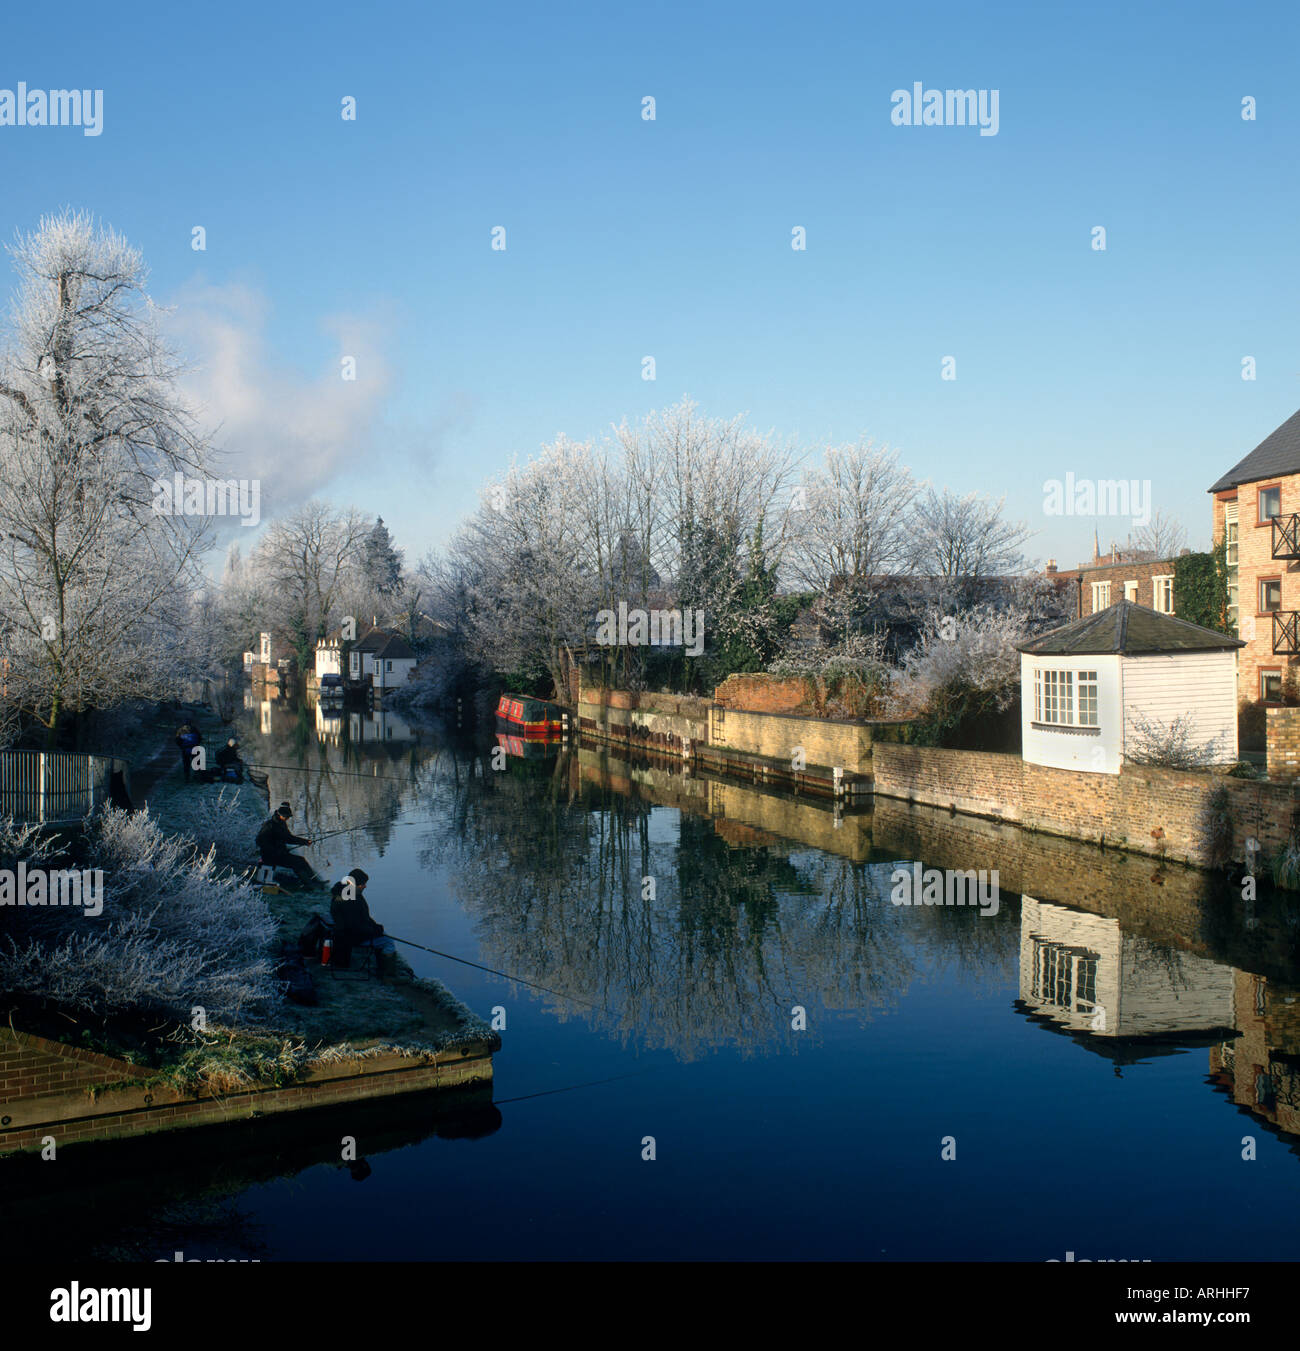 River Lea on a frosty winter morning, Ware, Hertfordshire, England, United Kingdom - Stock Image